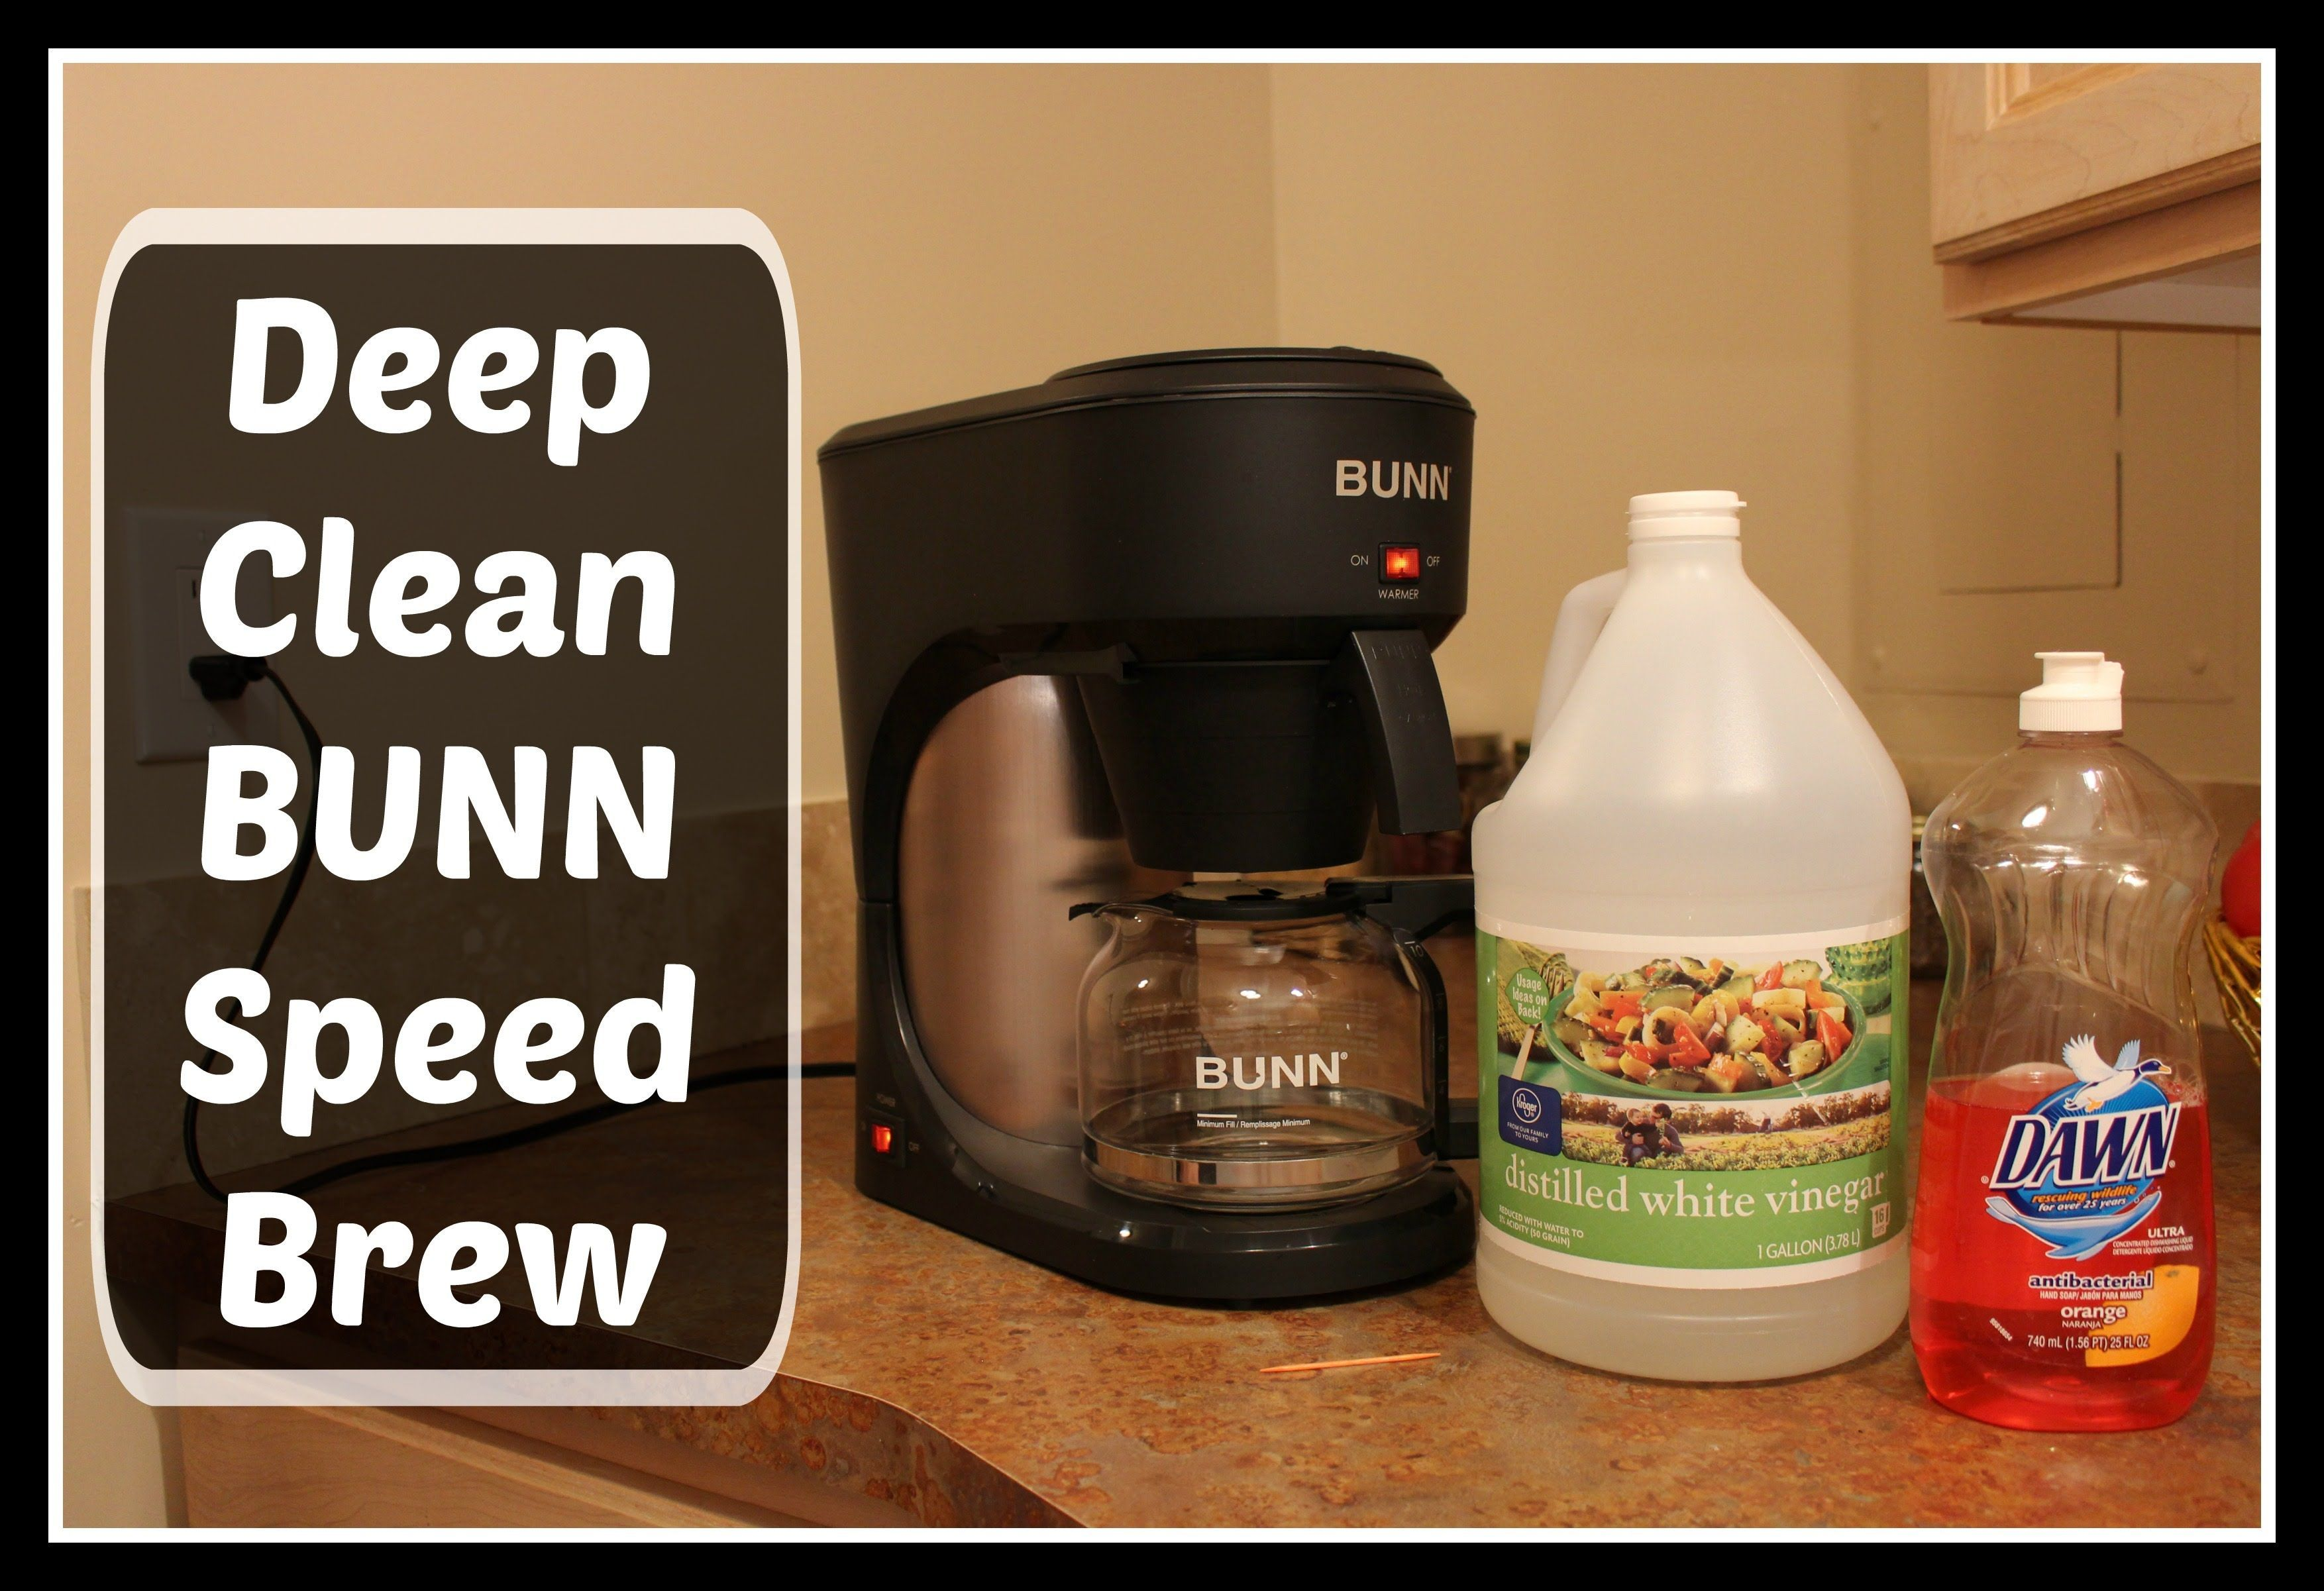 How to deep clean bunn speed brew coffee maker using